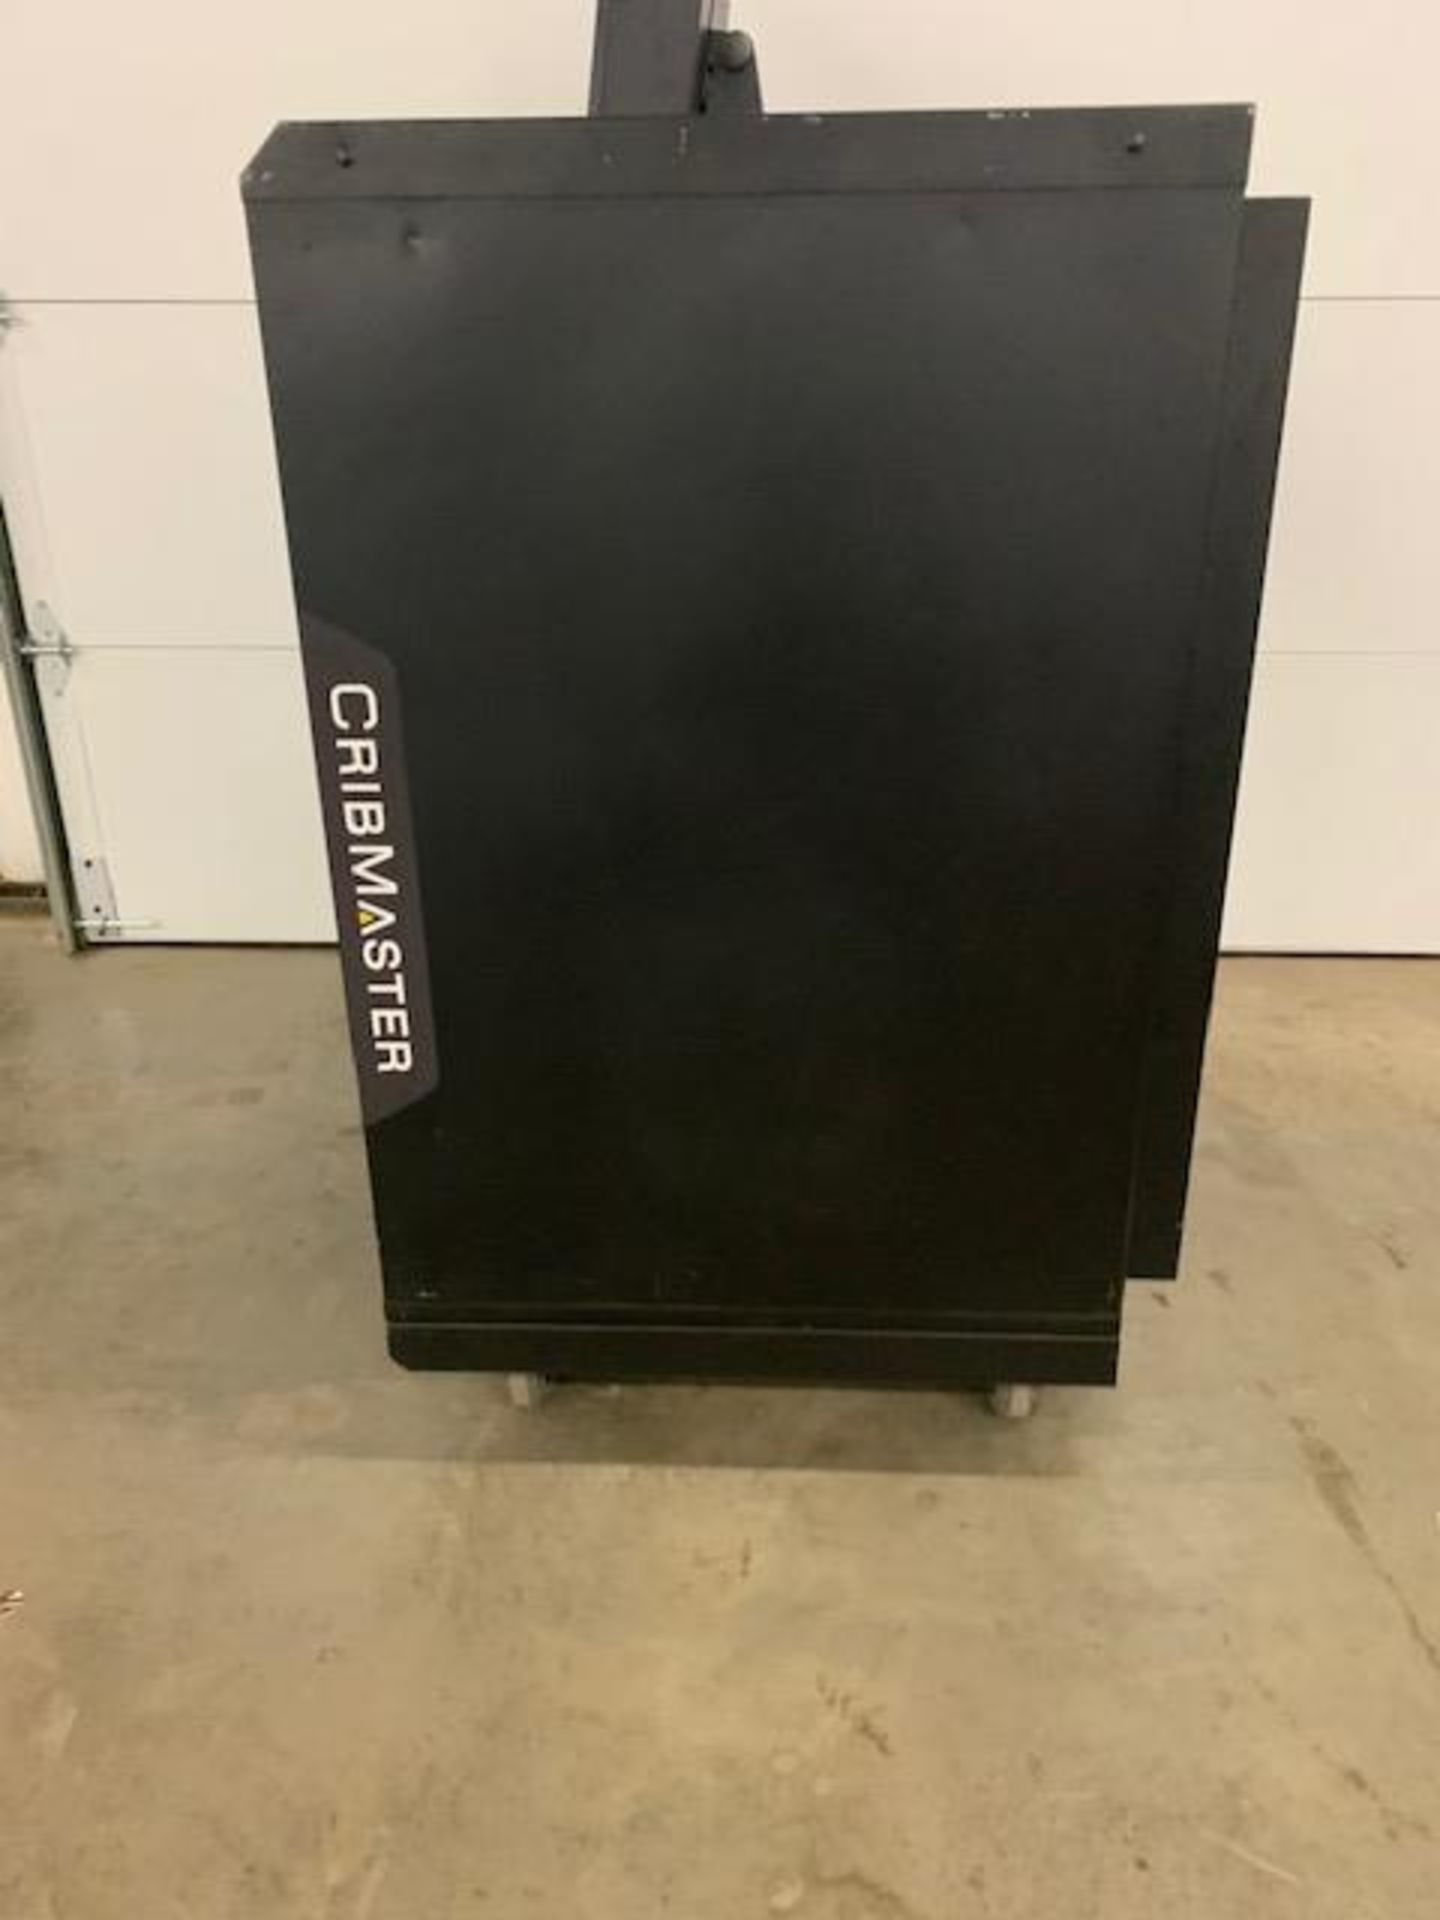 Cribmaster AccuDrawer - Image 3 of 10